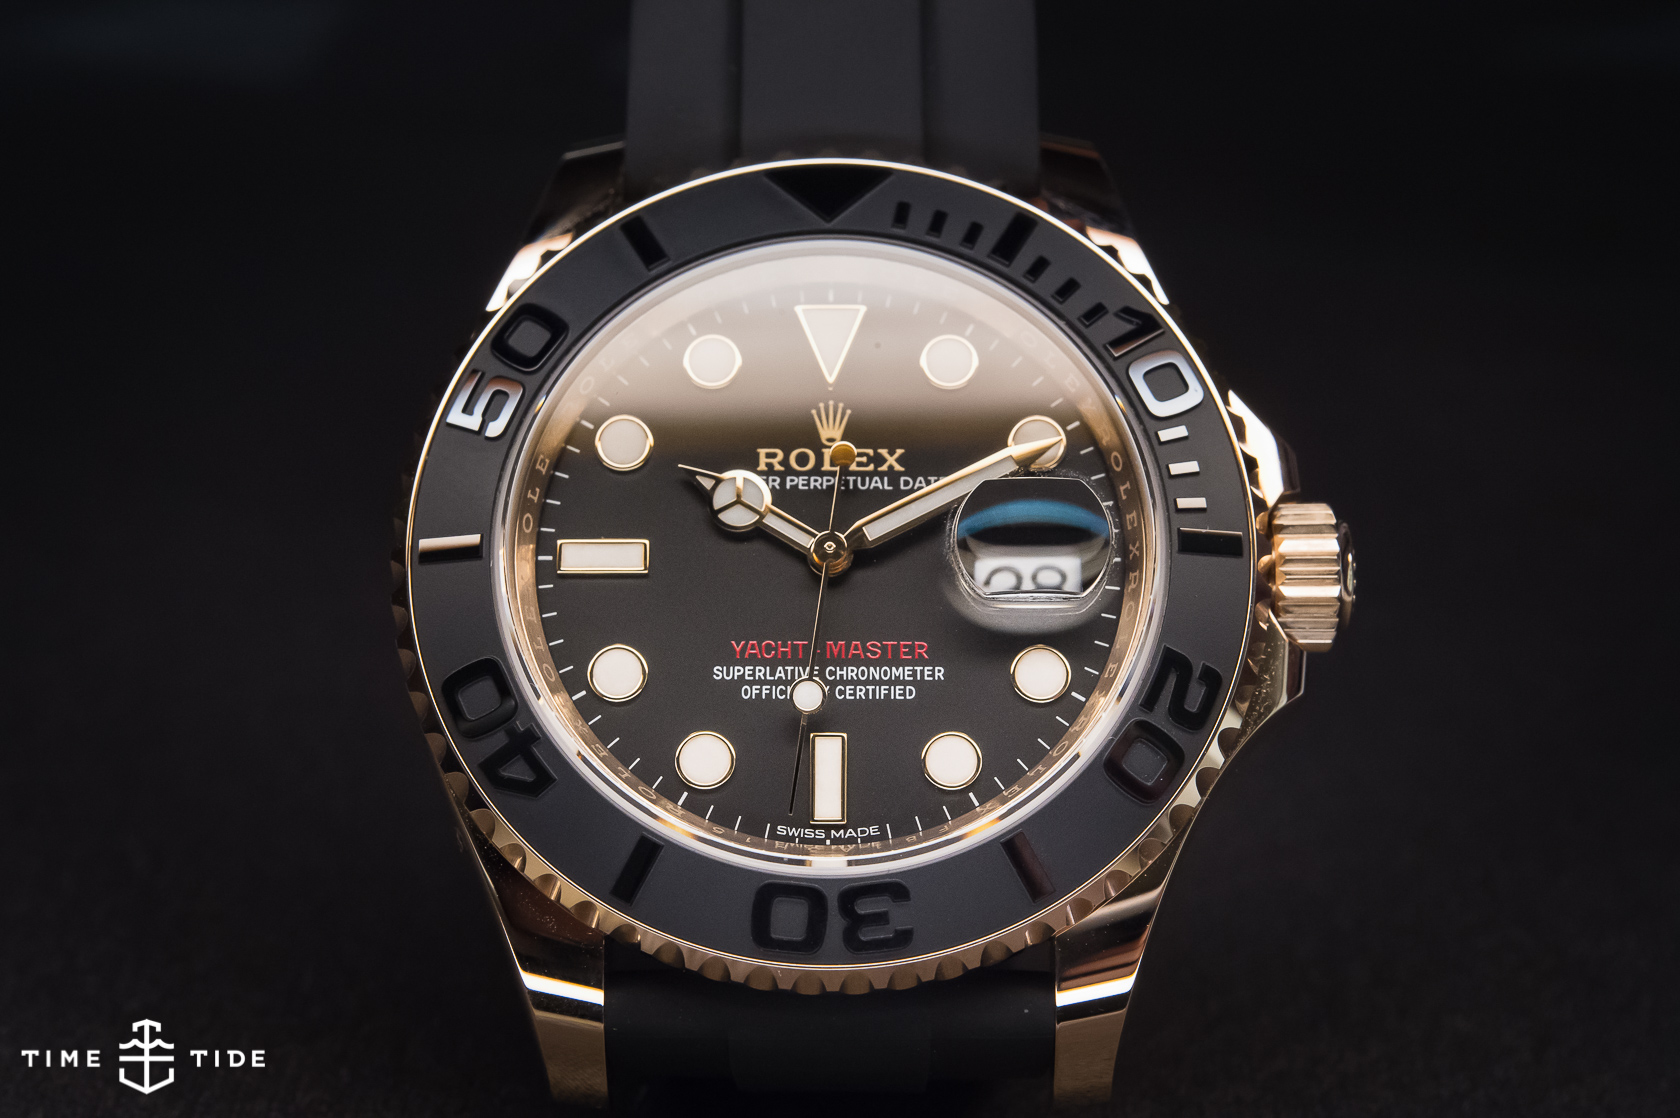 Rolex Oyster Perpetual Yacht Master 116655 In Everose With